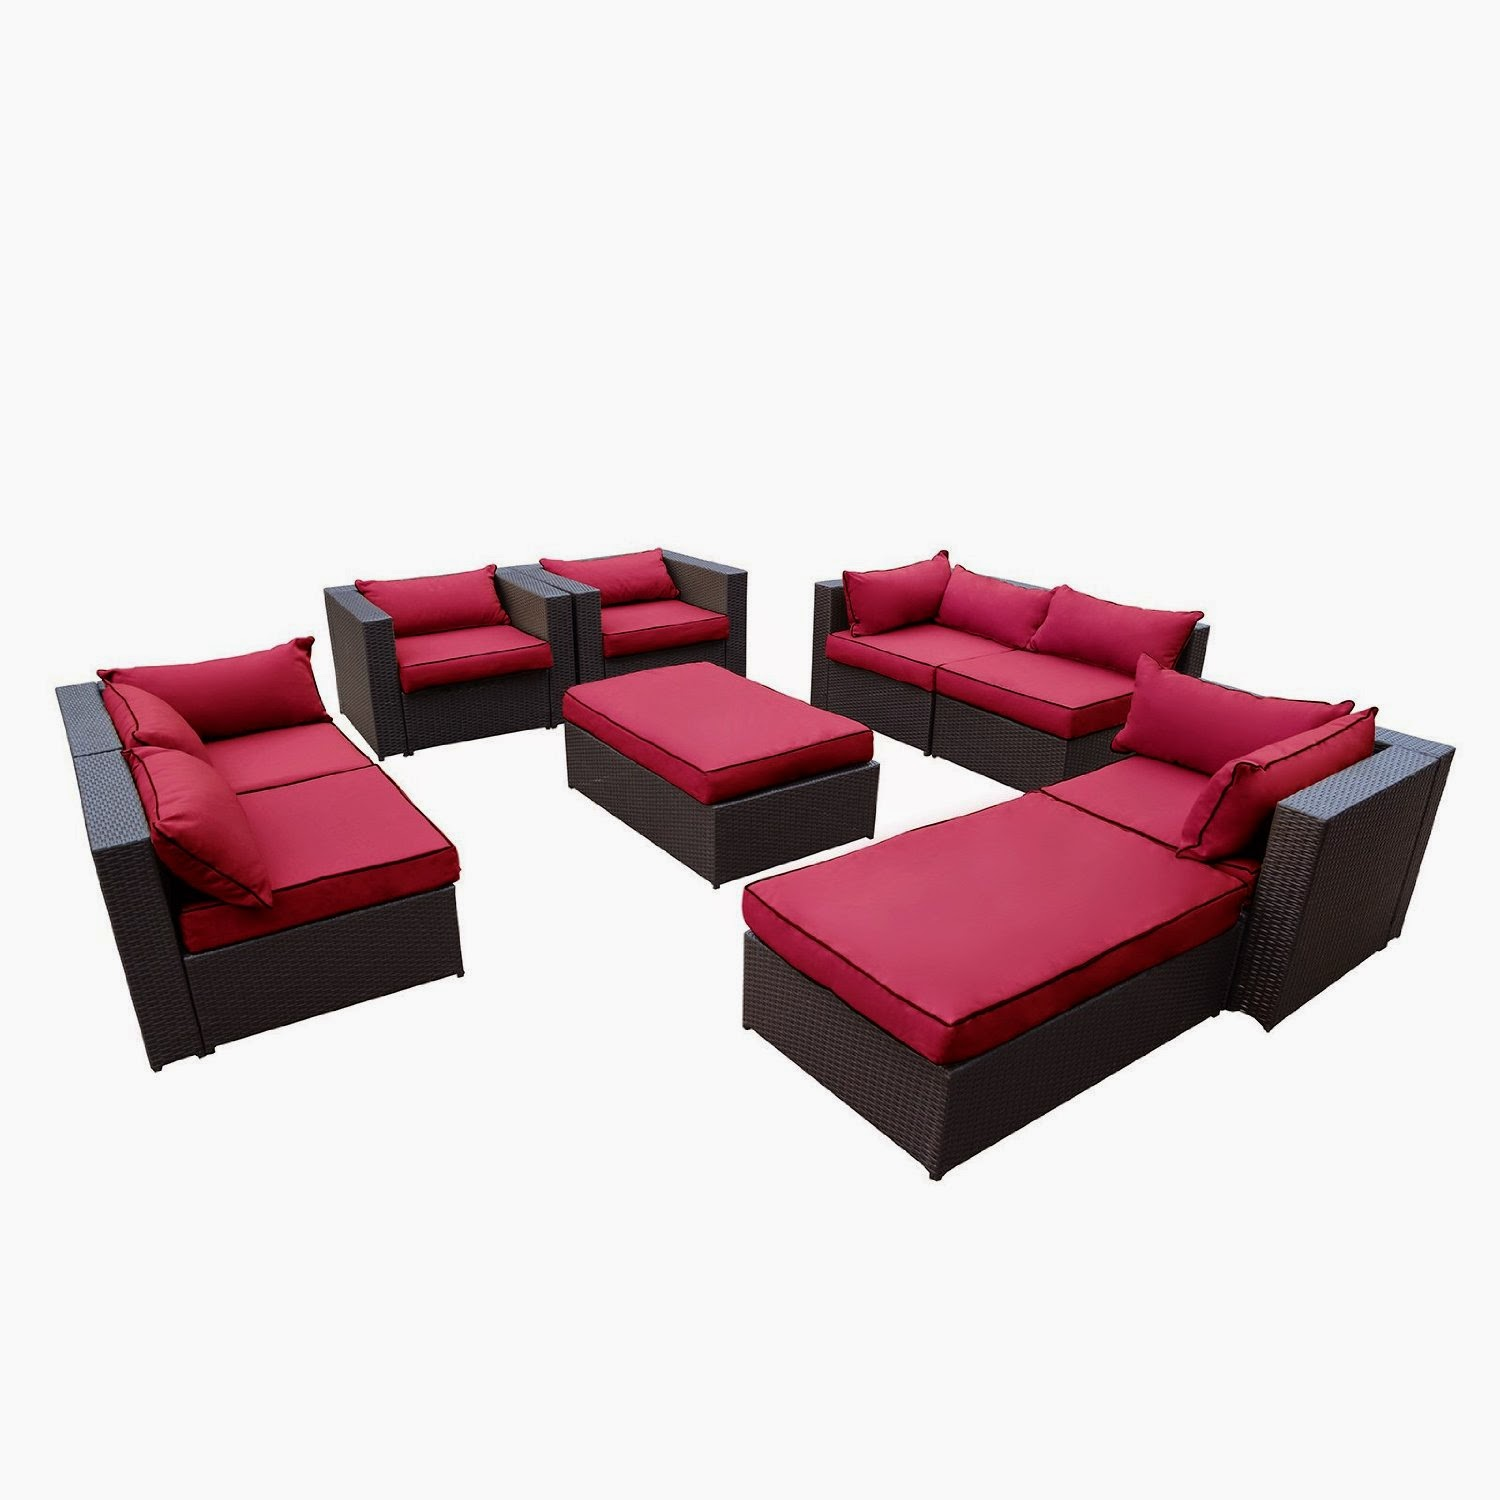 Outdoor Patio Rattan Wicker Furniture Sectional Sofa Garden Furniture